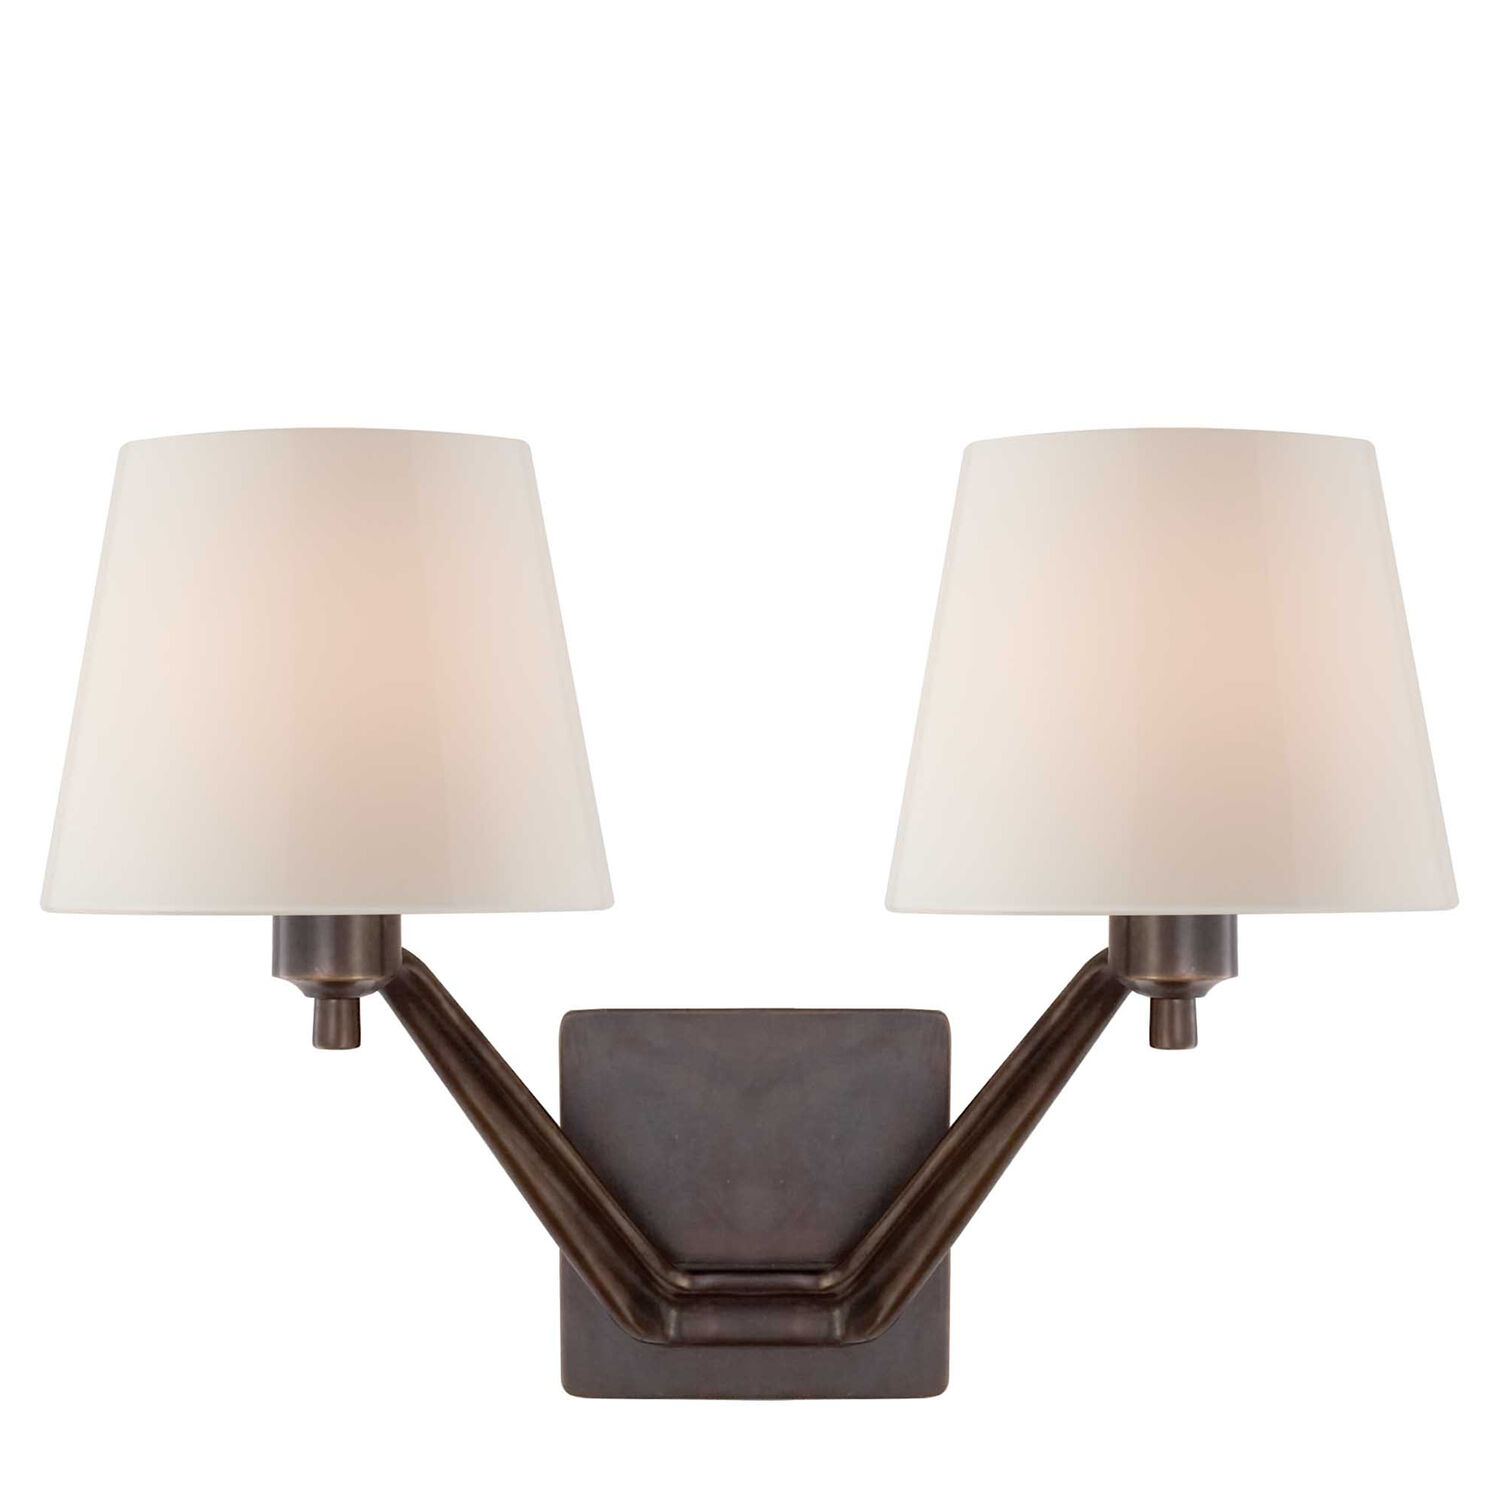 Union Double-Arm Wall Sconce with Glass Shade